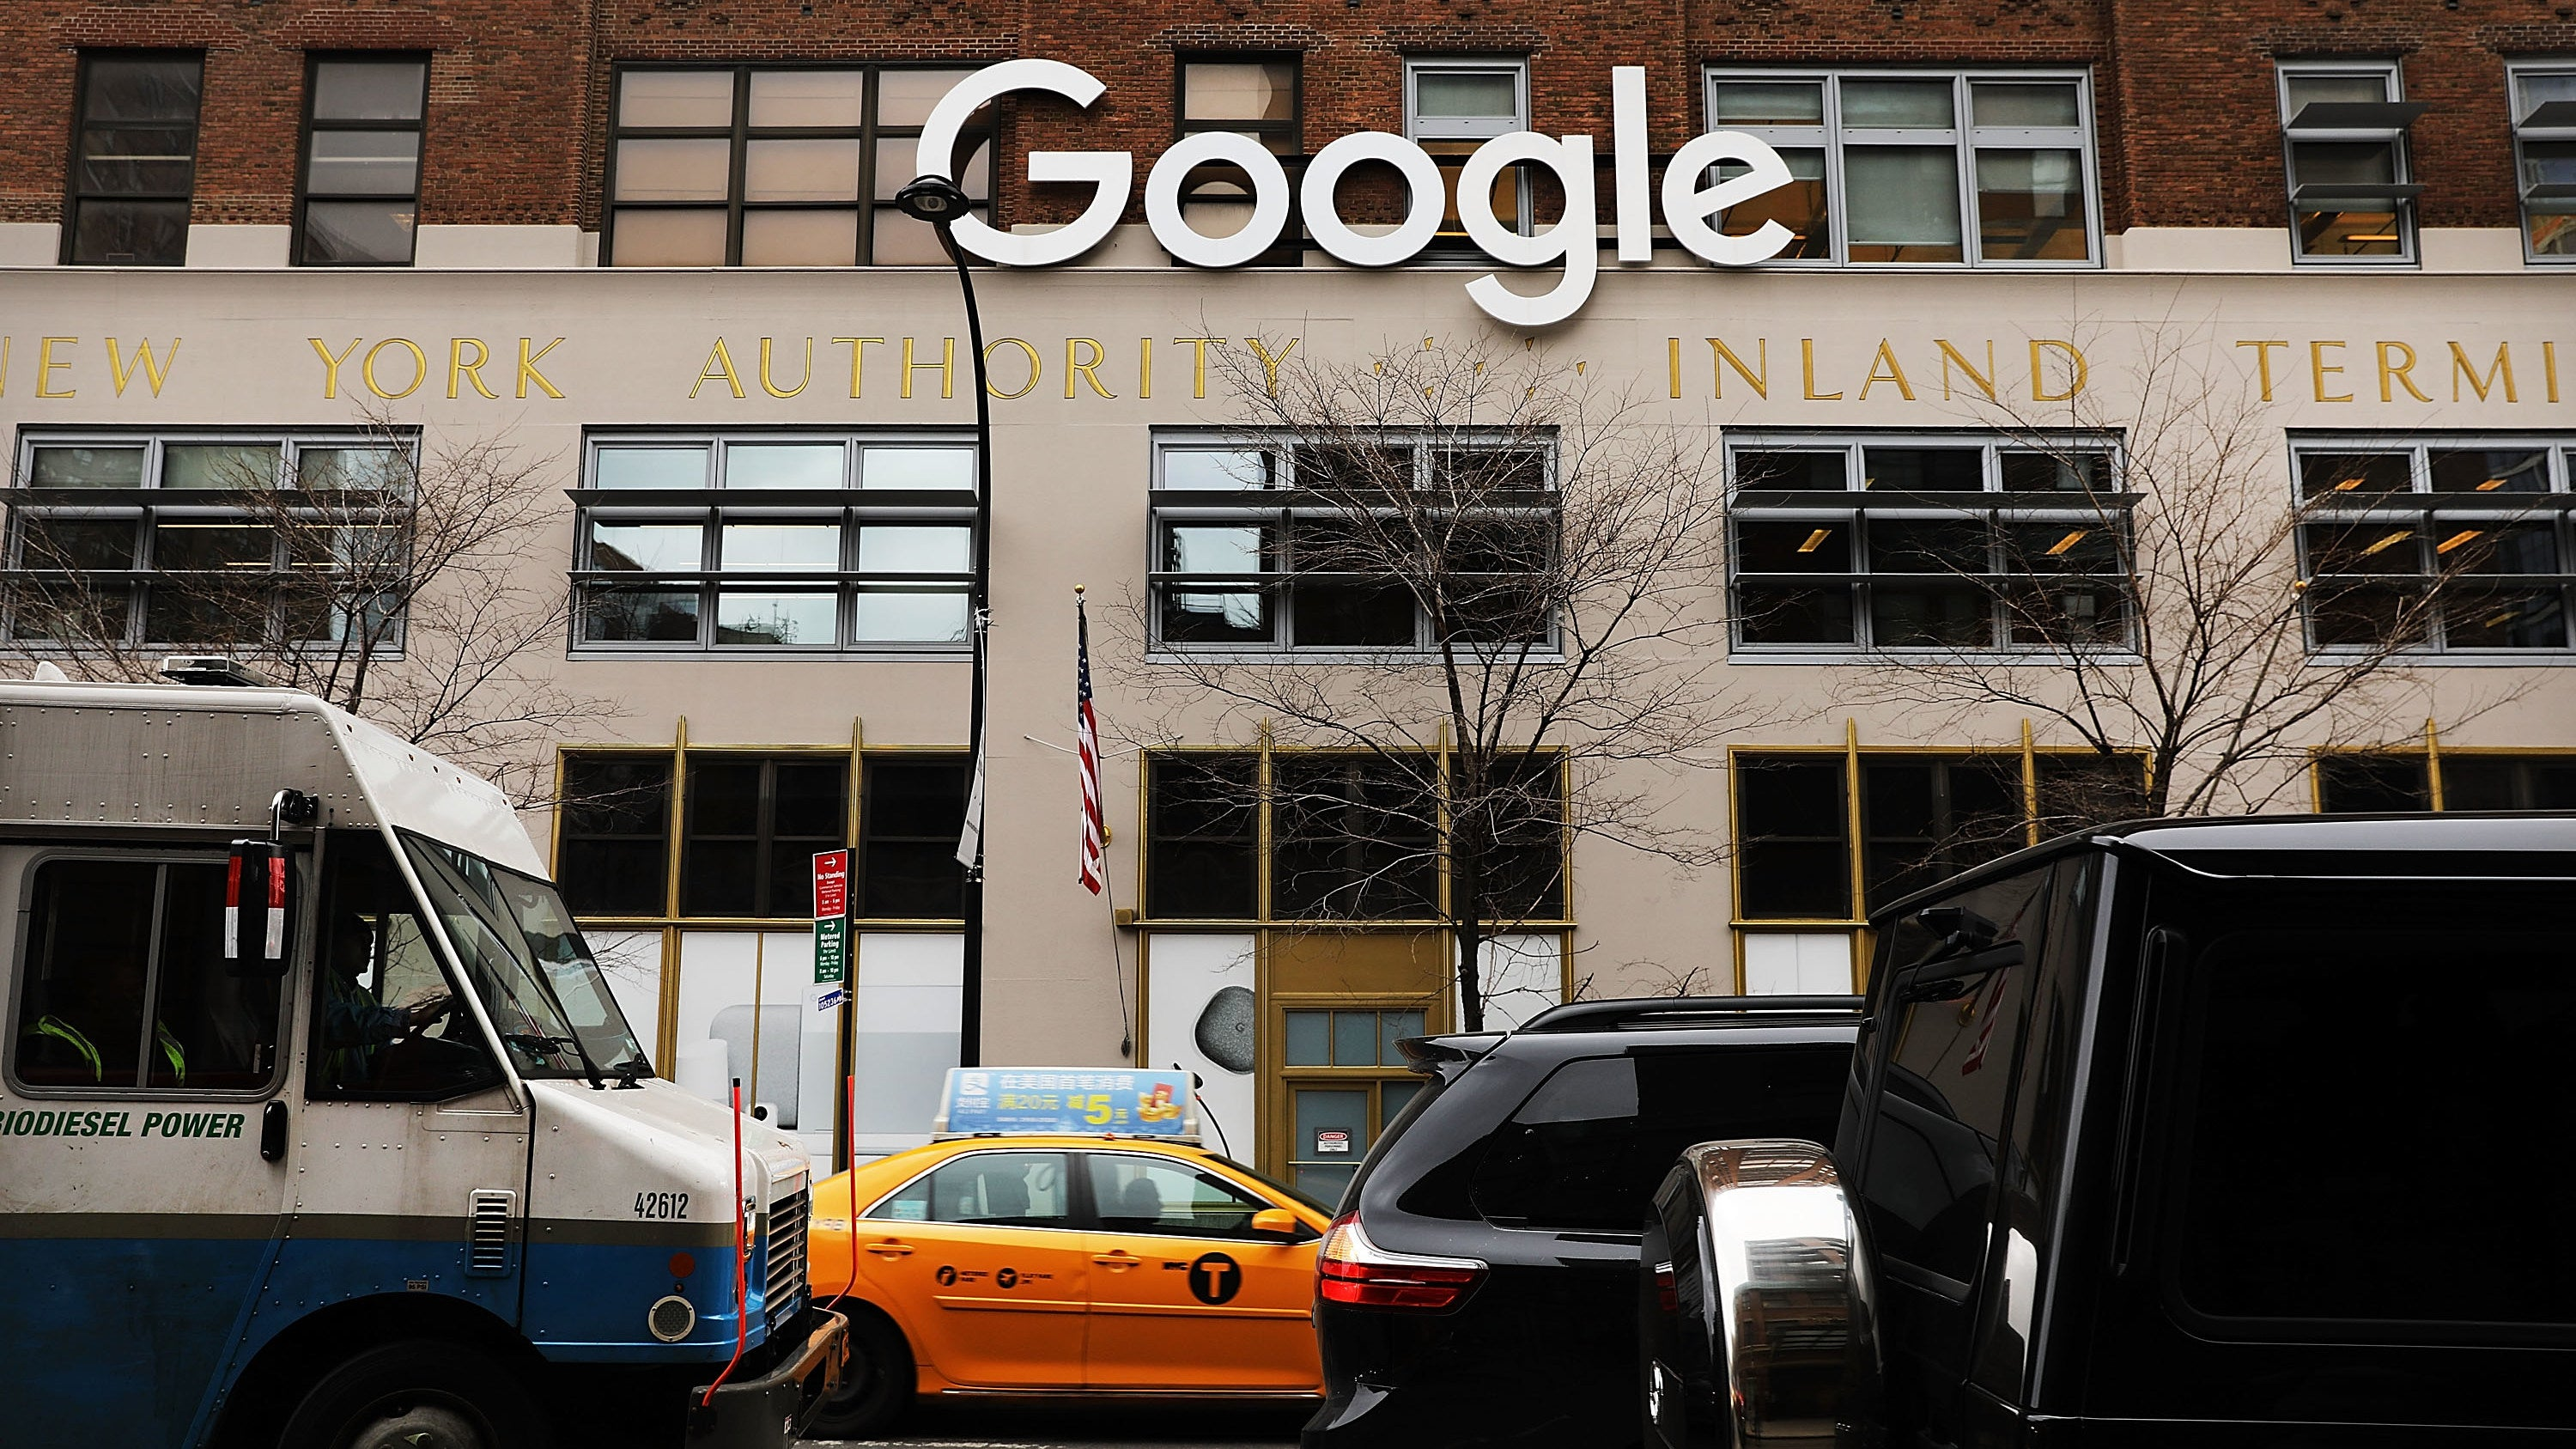 Google Asks All U.S. Staff To Work From Home As COVID-19 Spreads